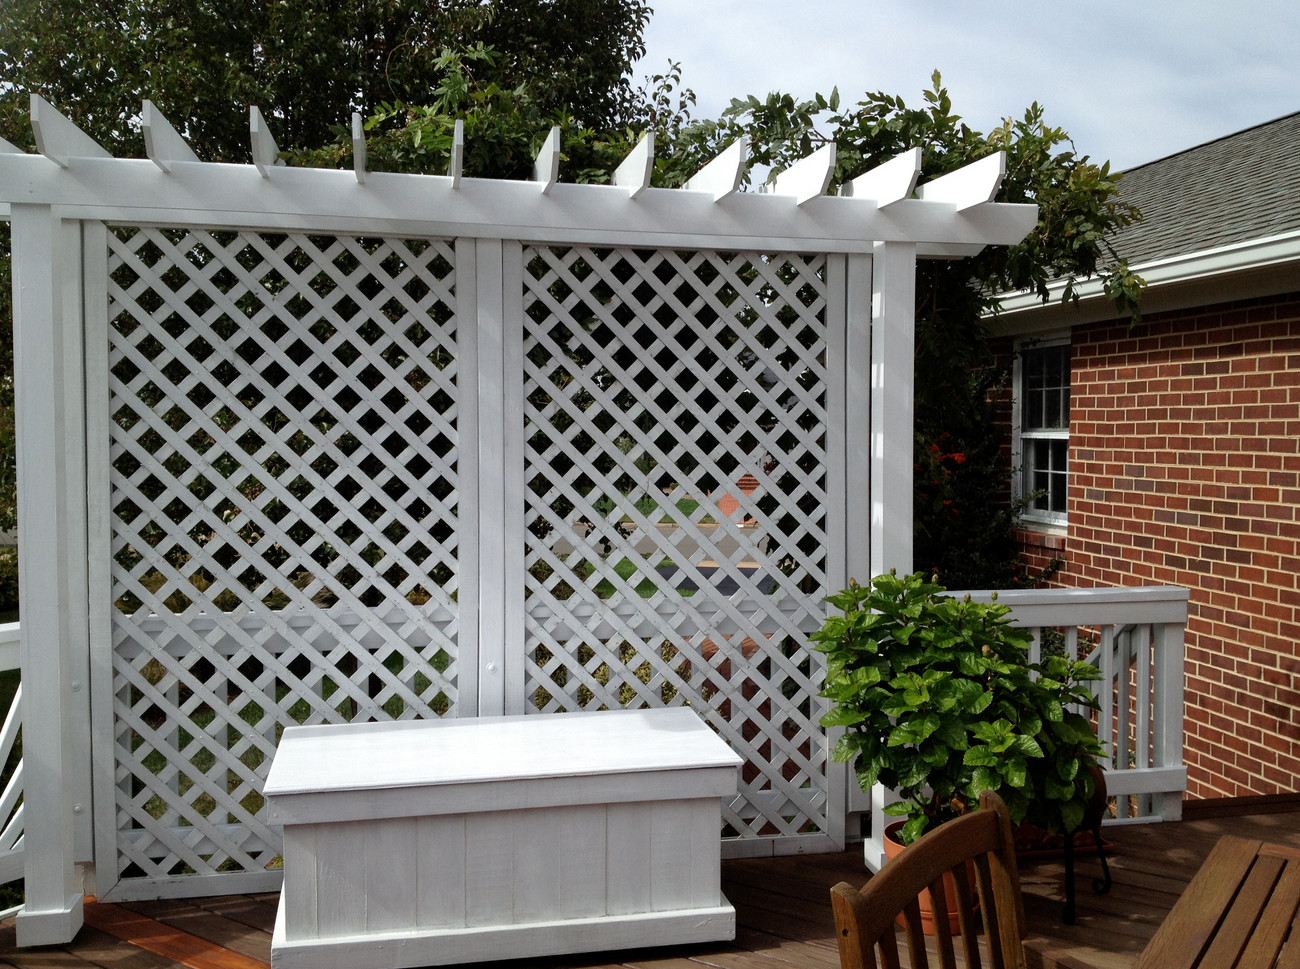 Lattice Privacy Screen for Deck4